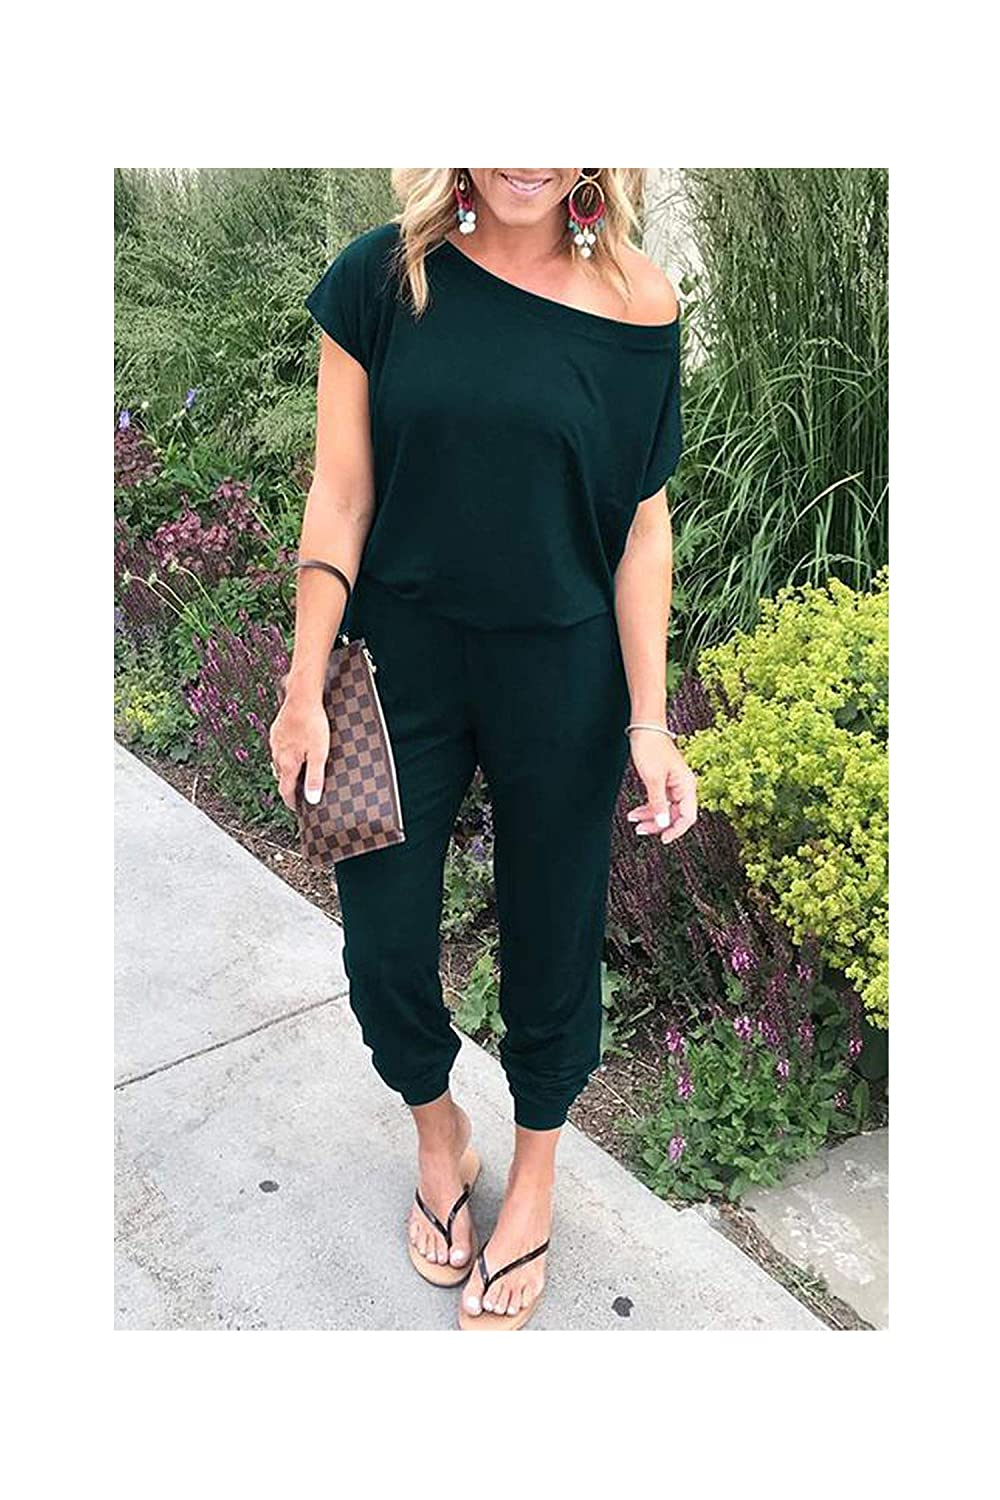 Cross Strap Lace Up Jumpsuits Summer Women V Neck Casual Sleeveless Pockets Long Romper